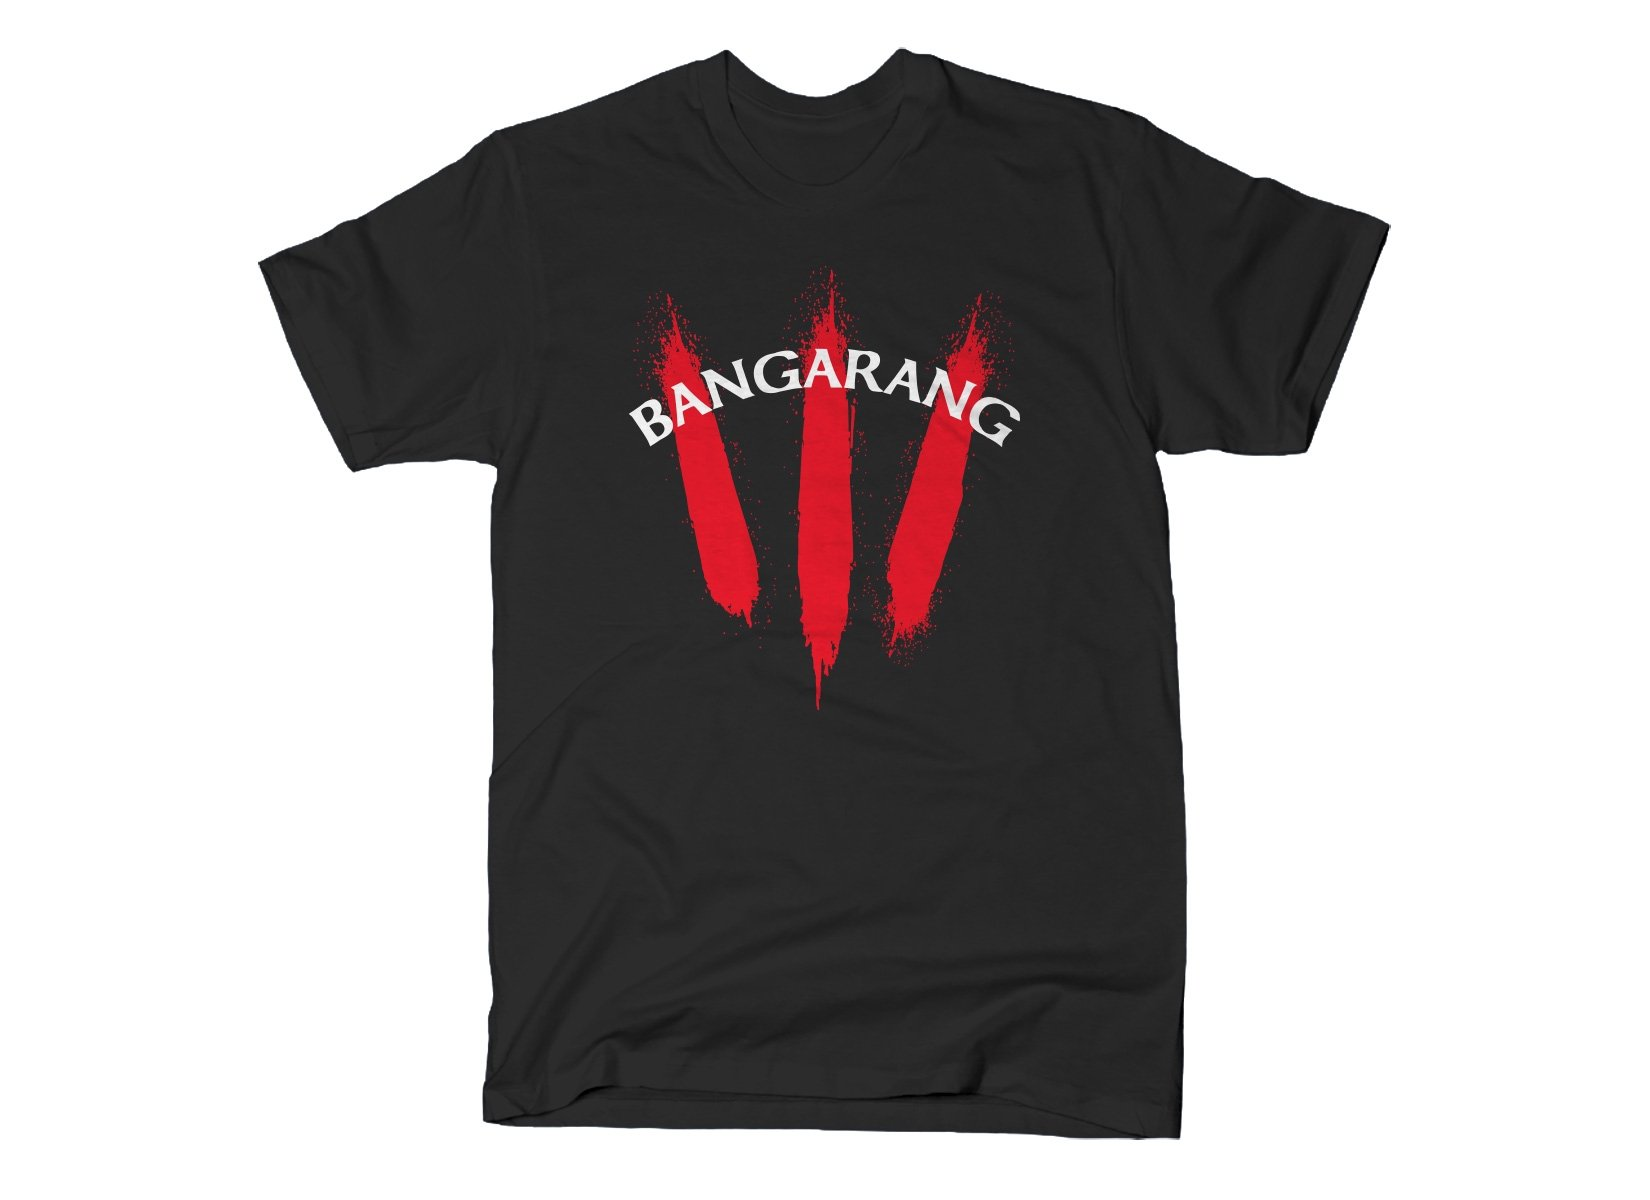 Bangarang on Mens T-Shirt